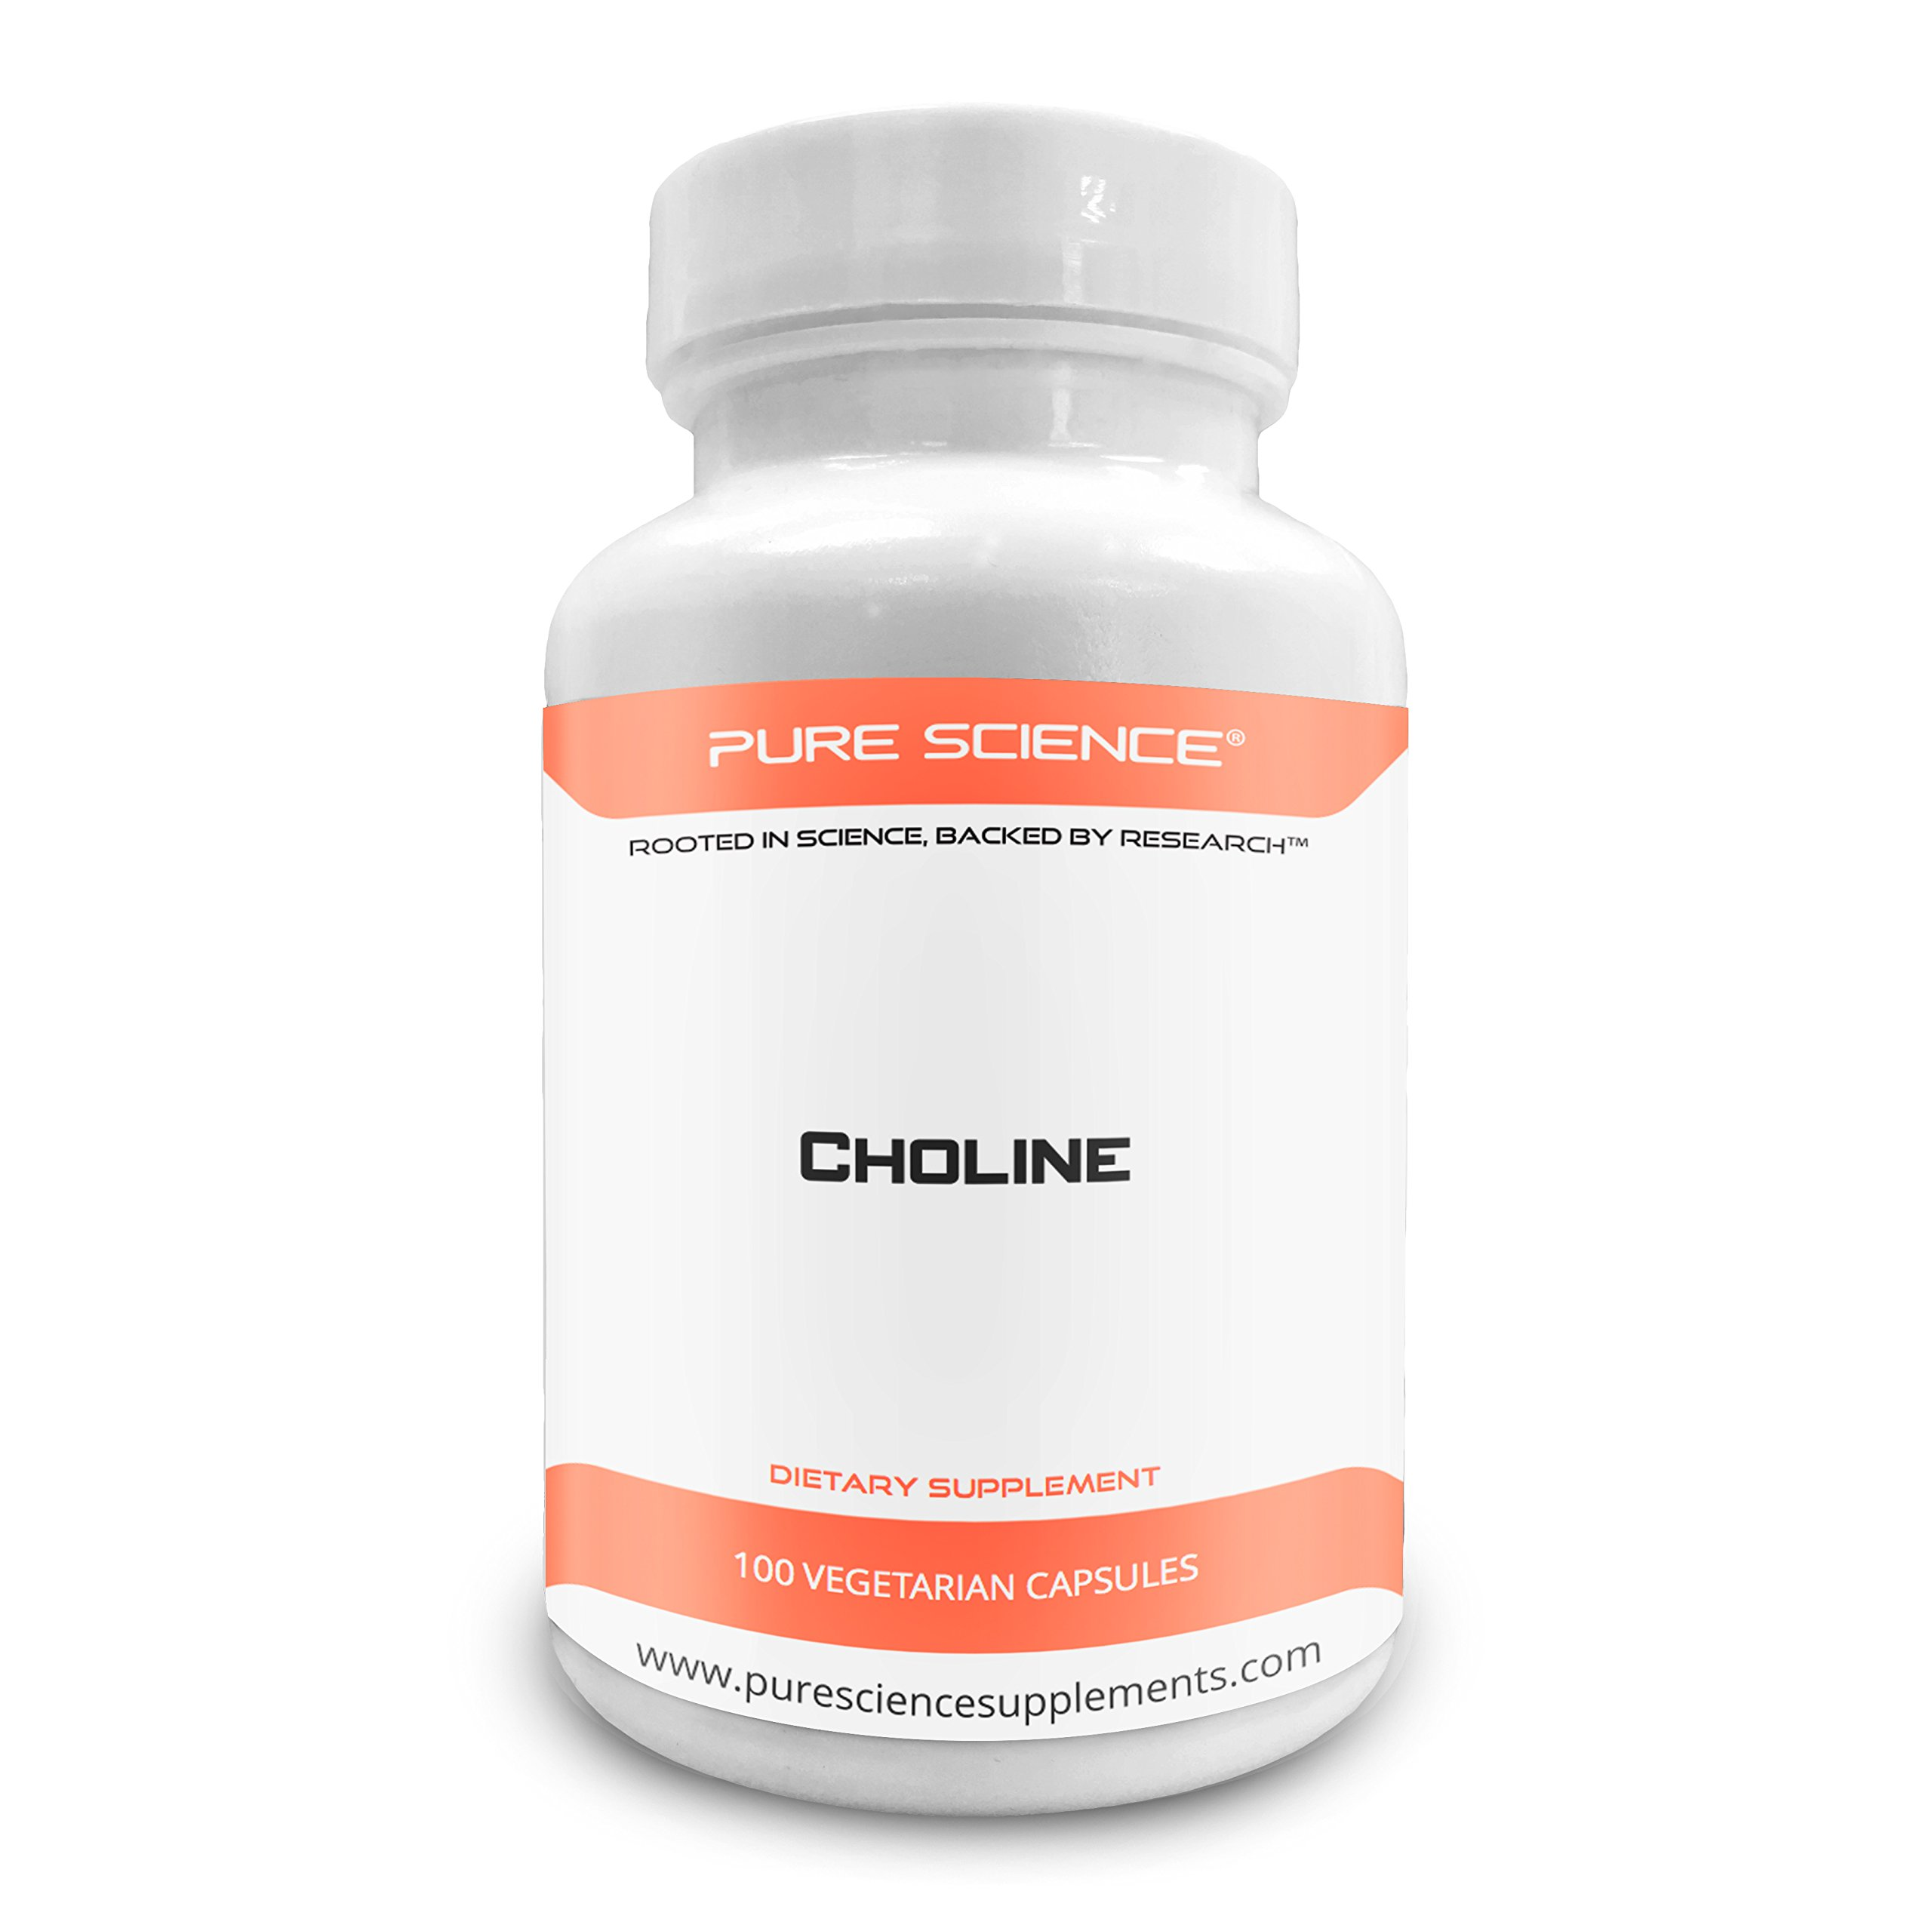 Pure Science Choline Bitartrate Capsules 240mg - Improves Brain Function, Muscle Function & Overall Health - 100 Vegetarian Capsules of Choline Bitartrate Powder